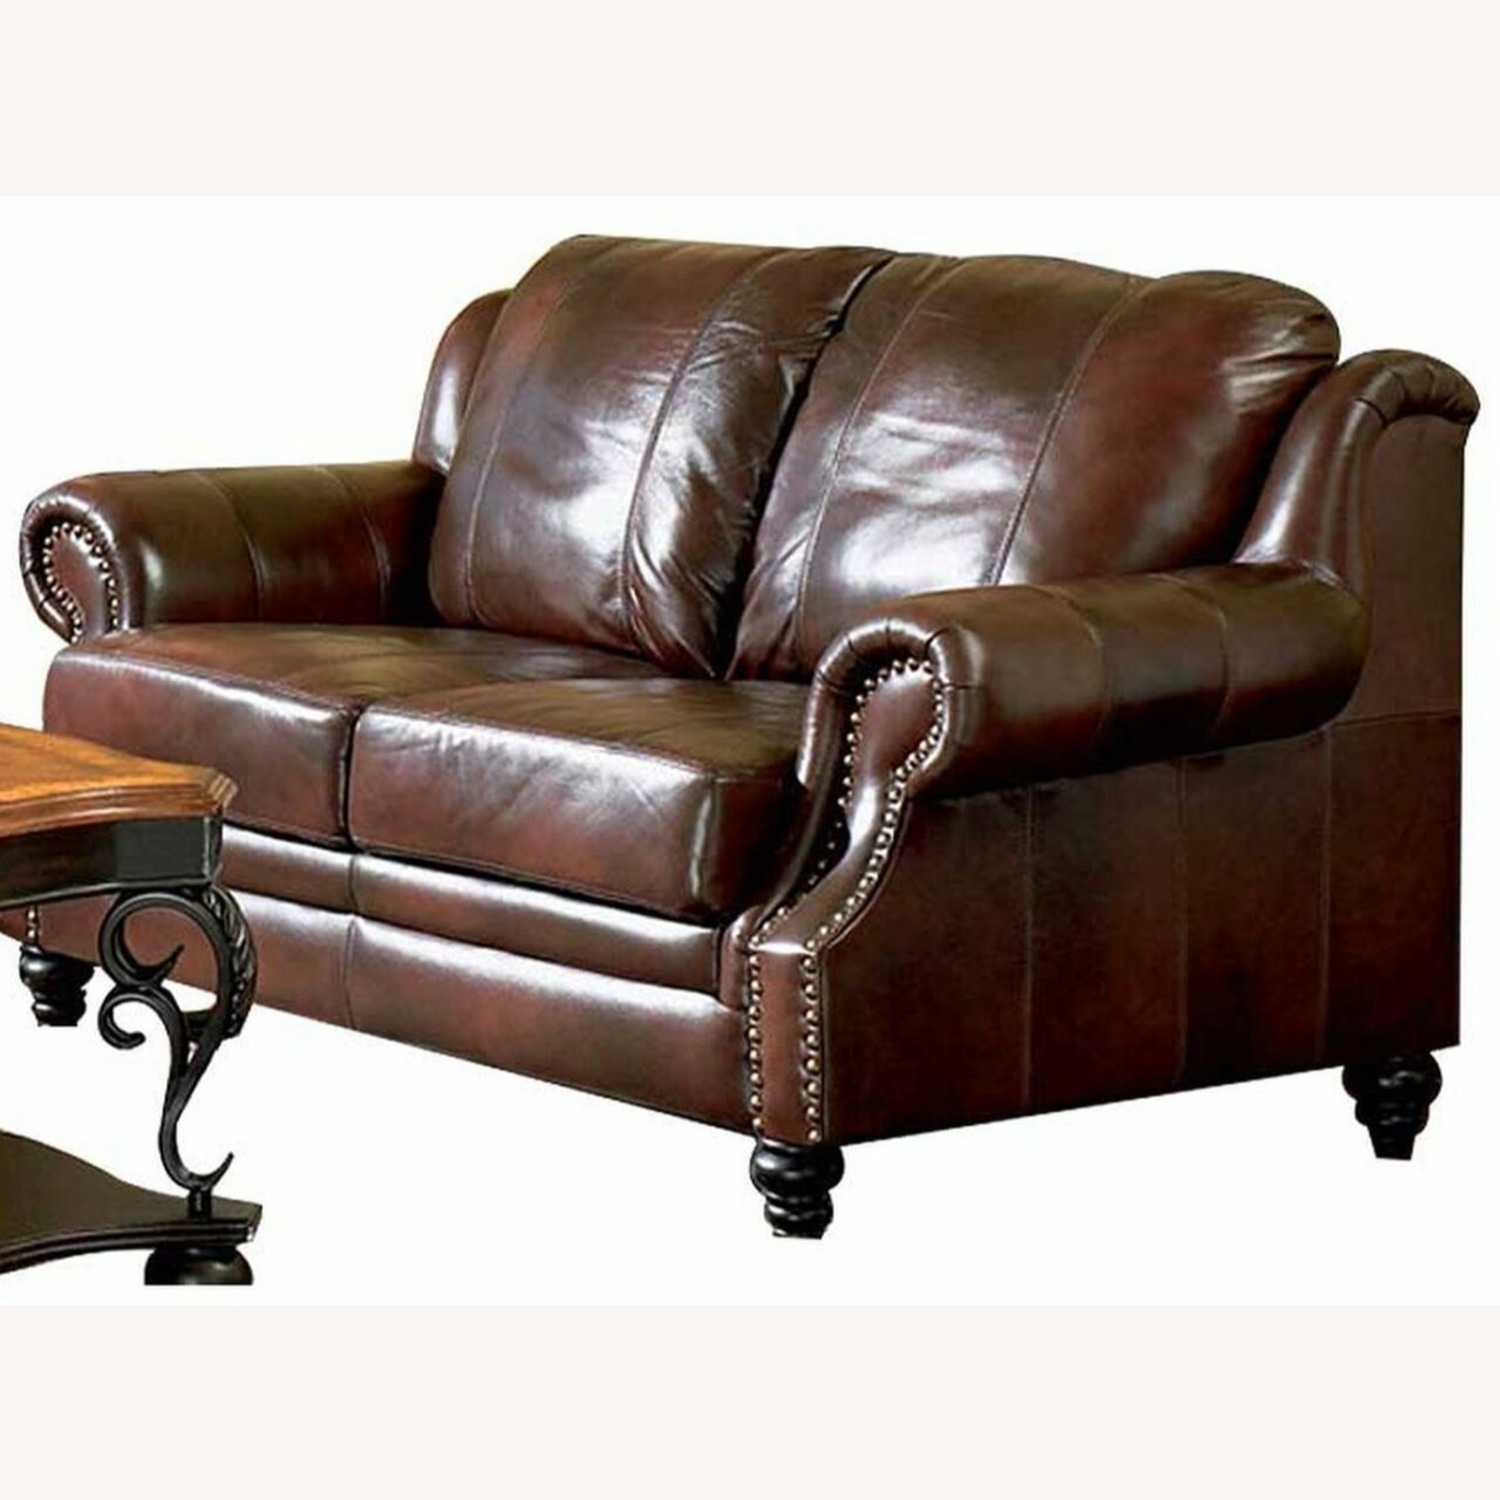 Loveseat In Burgundy Hand Rubbed Leather - image-1